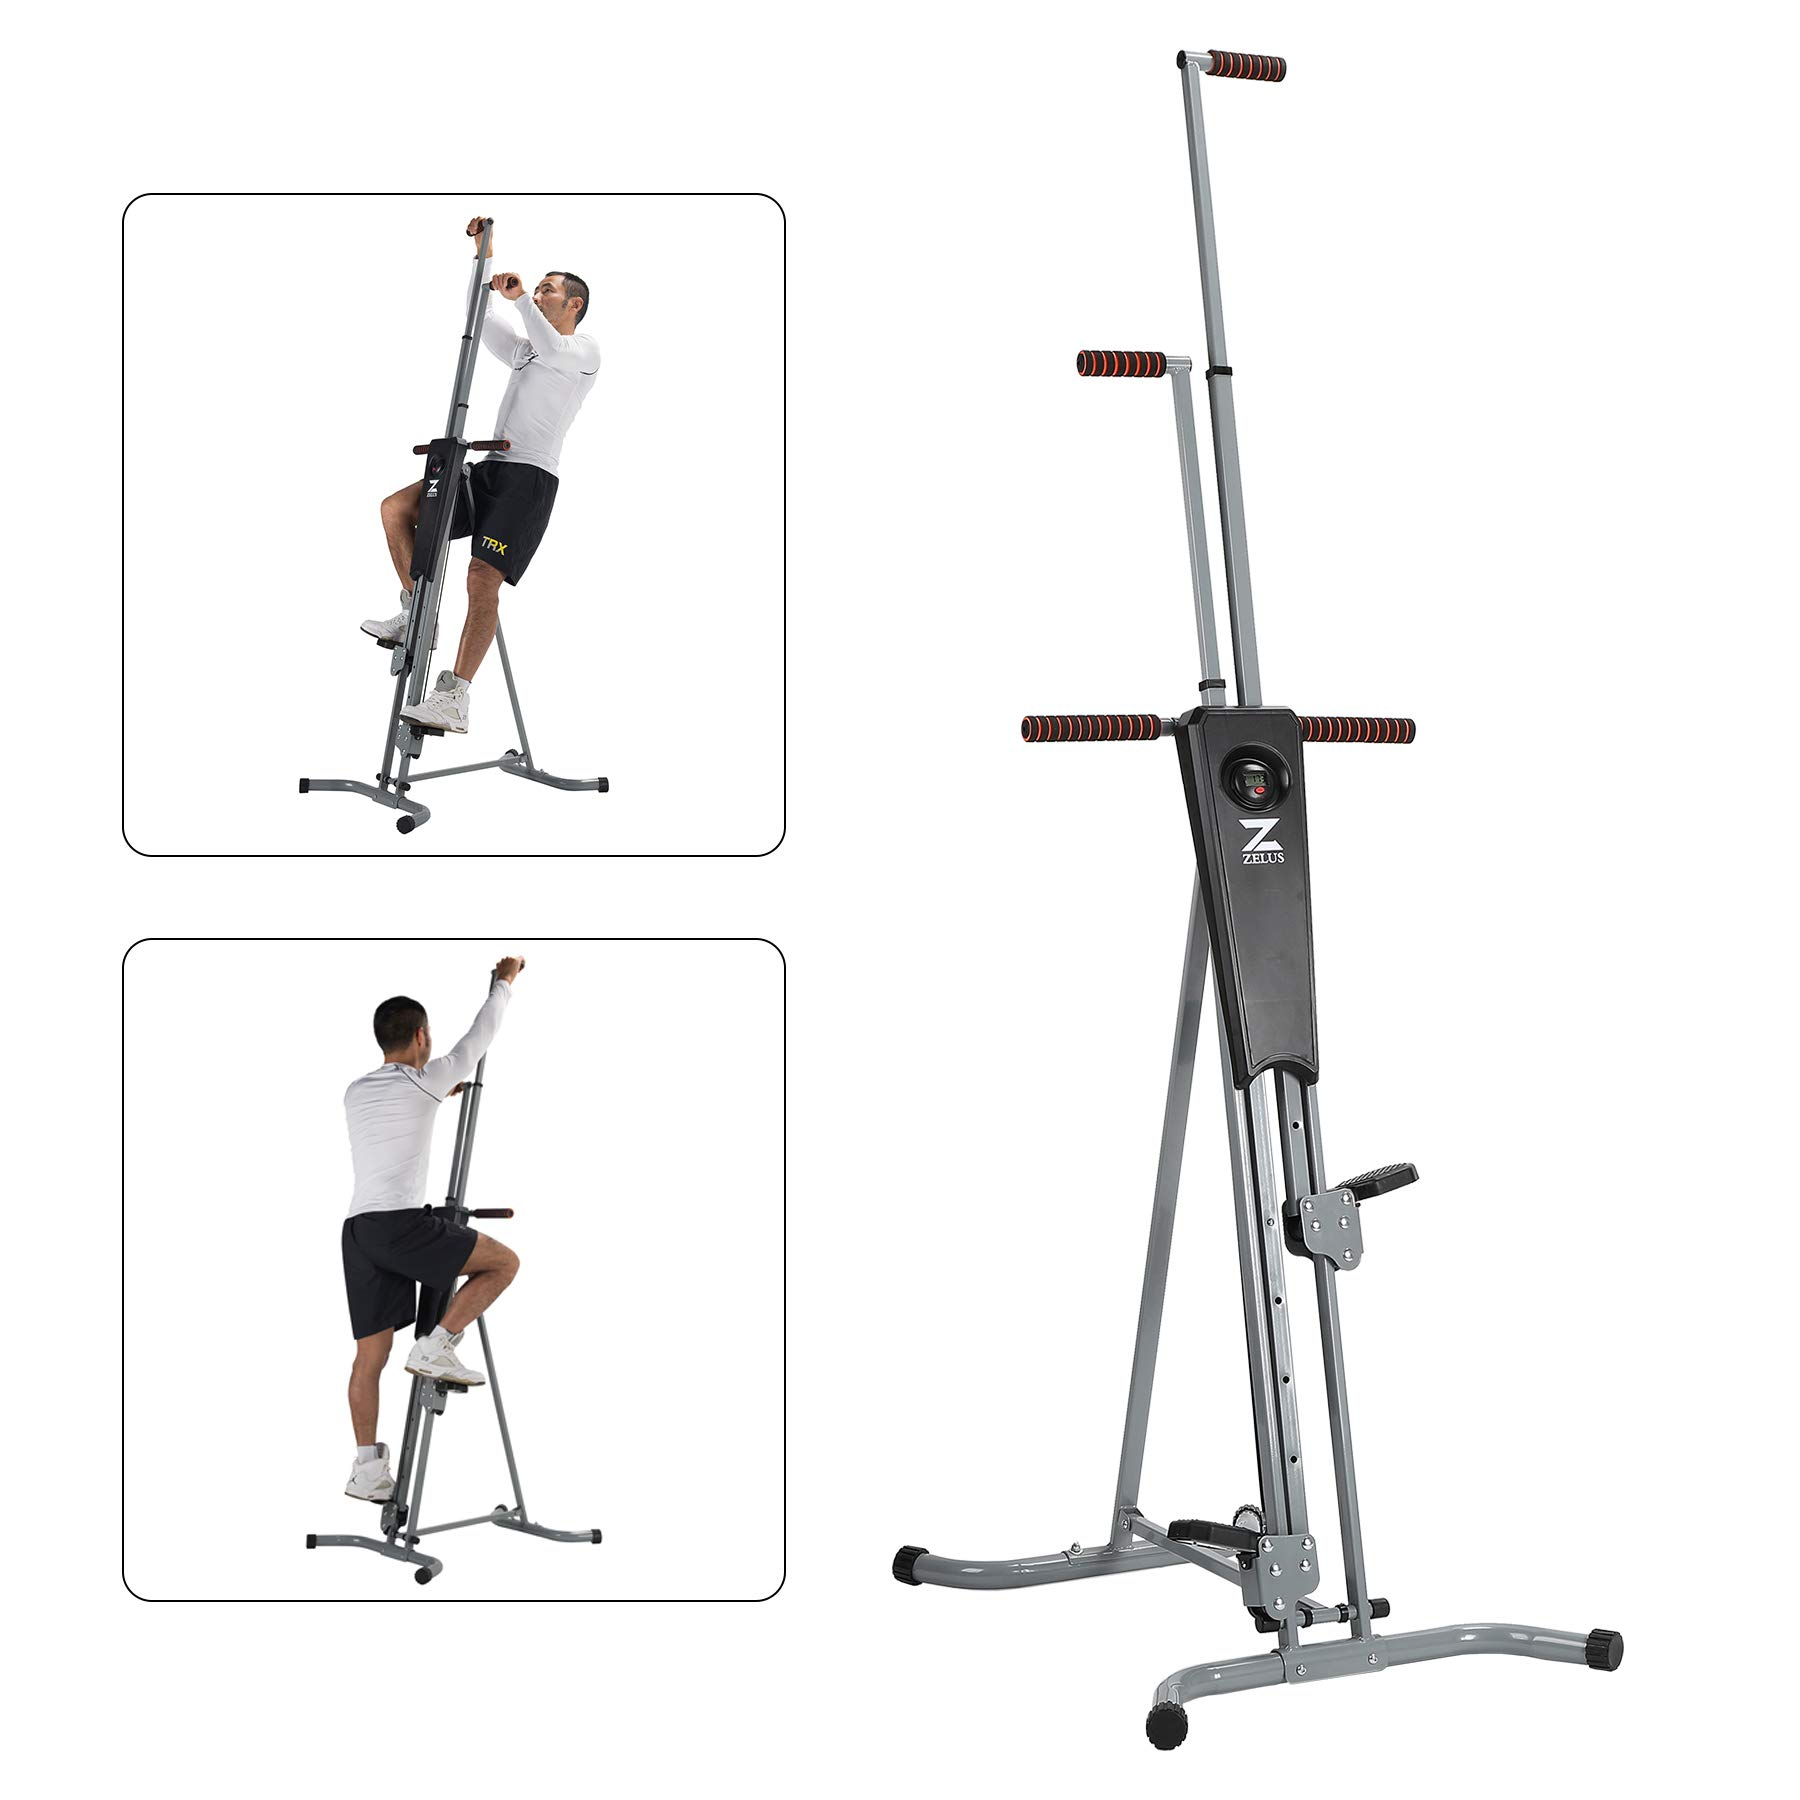 ZELUS Vertical Climber Machine Fitness Step Climber Exercise Machine Equipment with LED Display for Home Gym